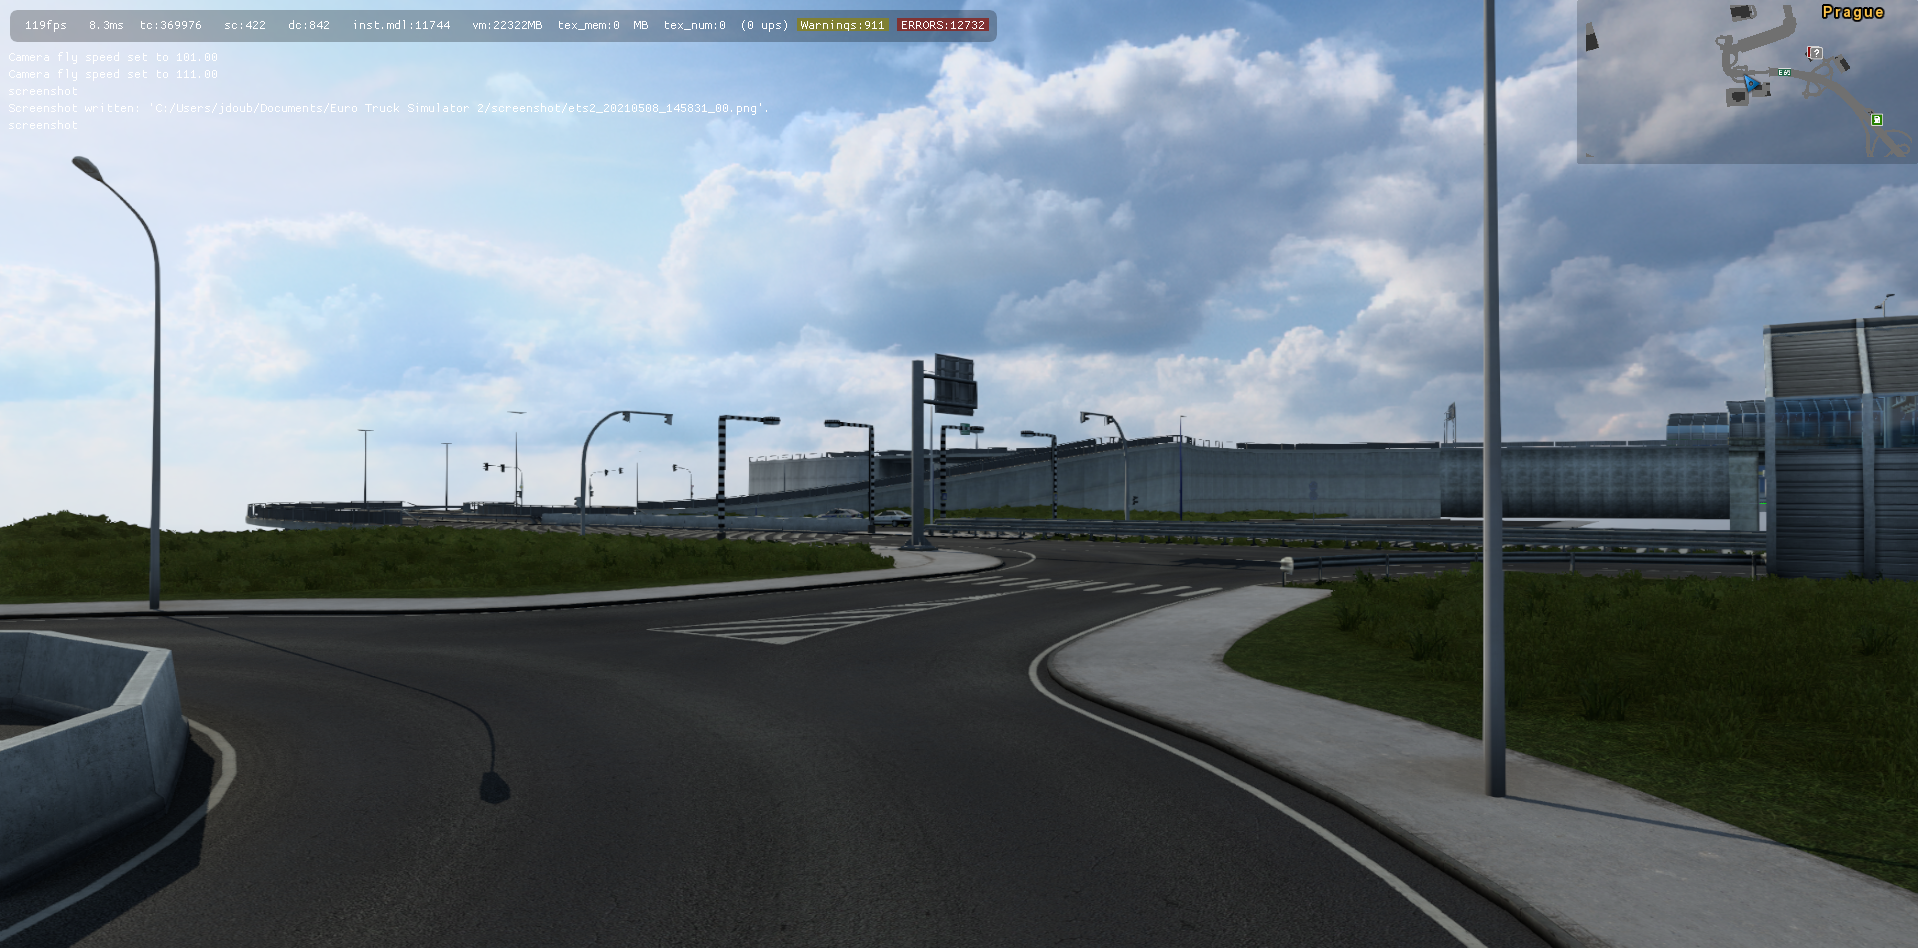 ets2_20210508_145837_00.png